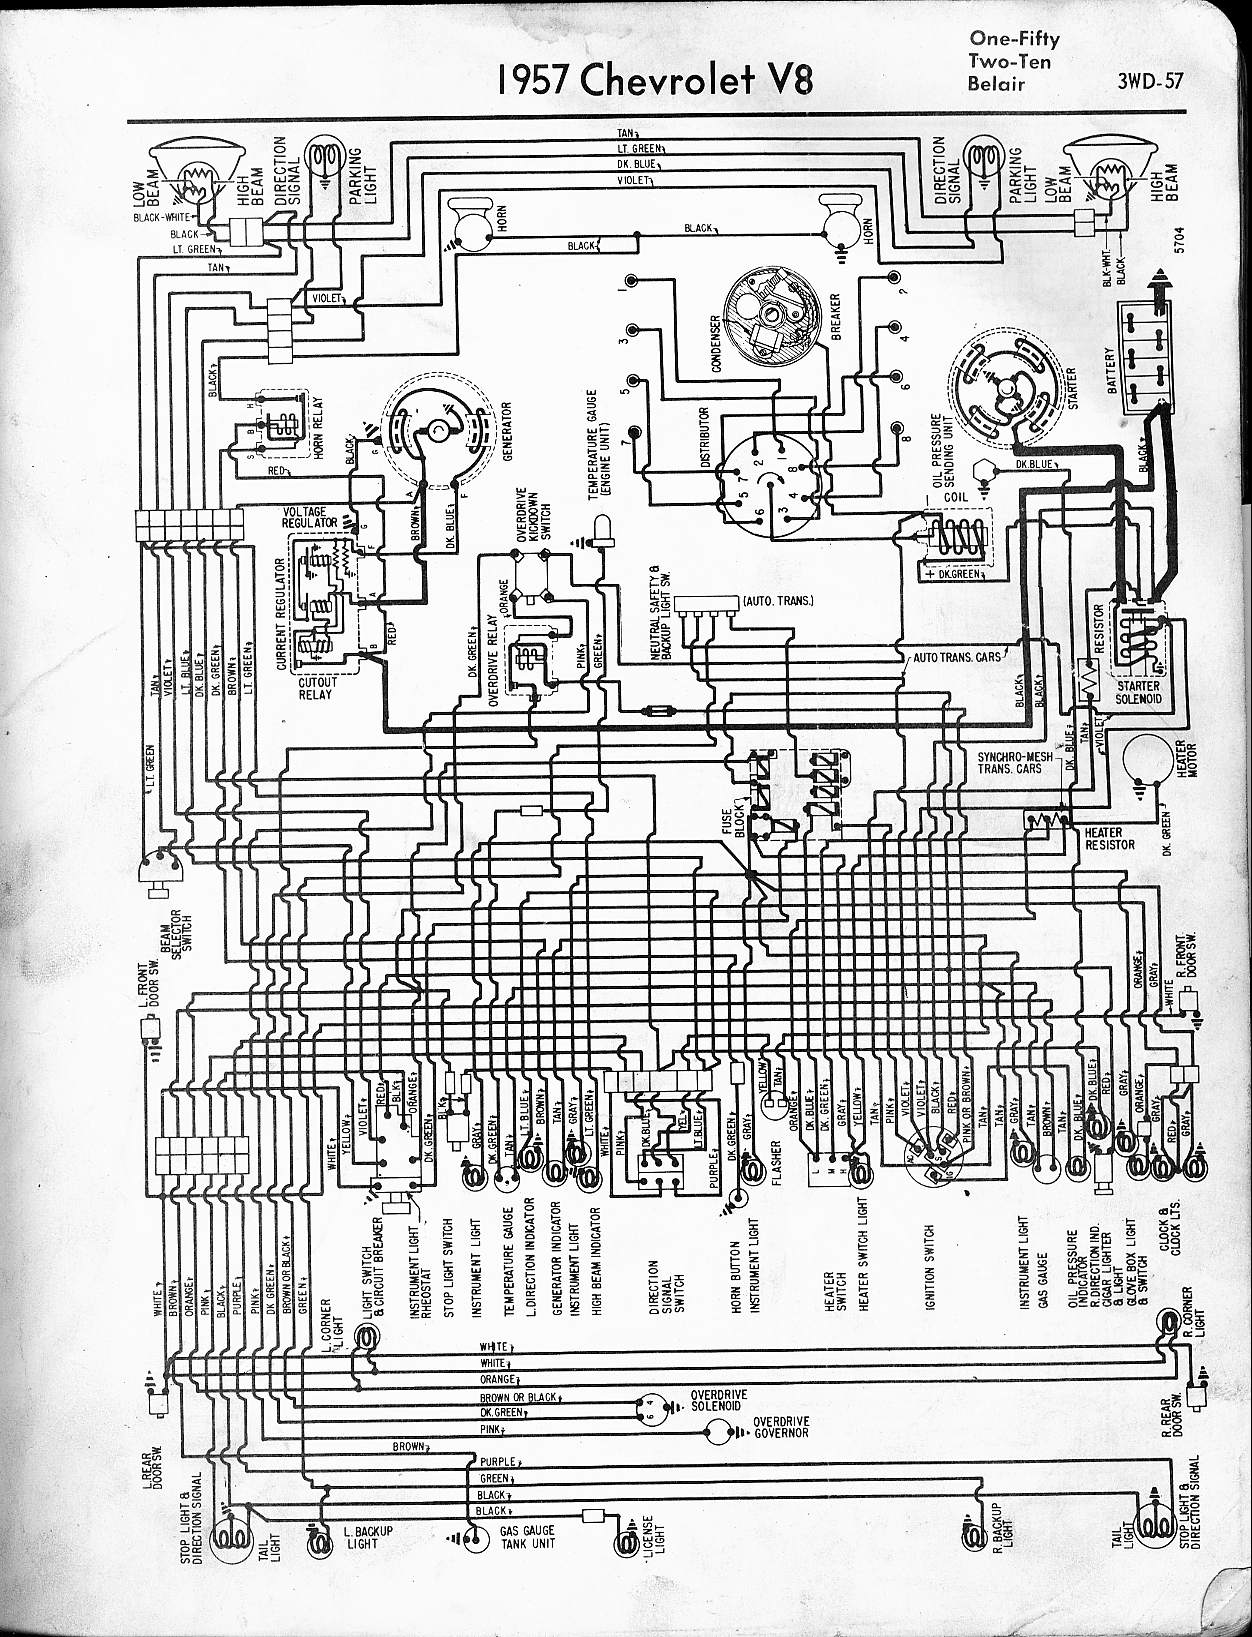 MWireChev57_3WD 057 57 65 chevy wiring diagrams 57 chevy truck wiring harness at metegol.co